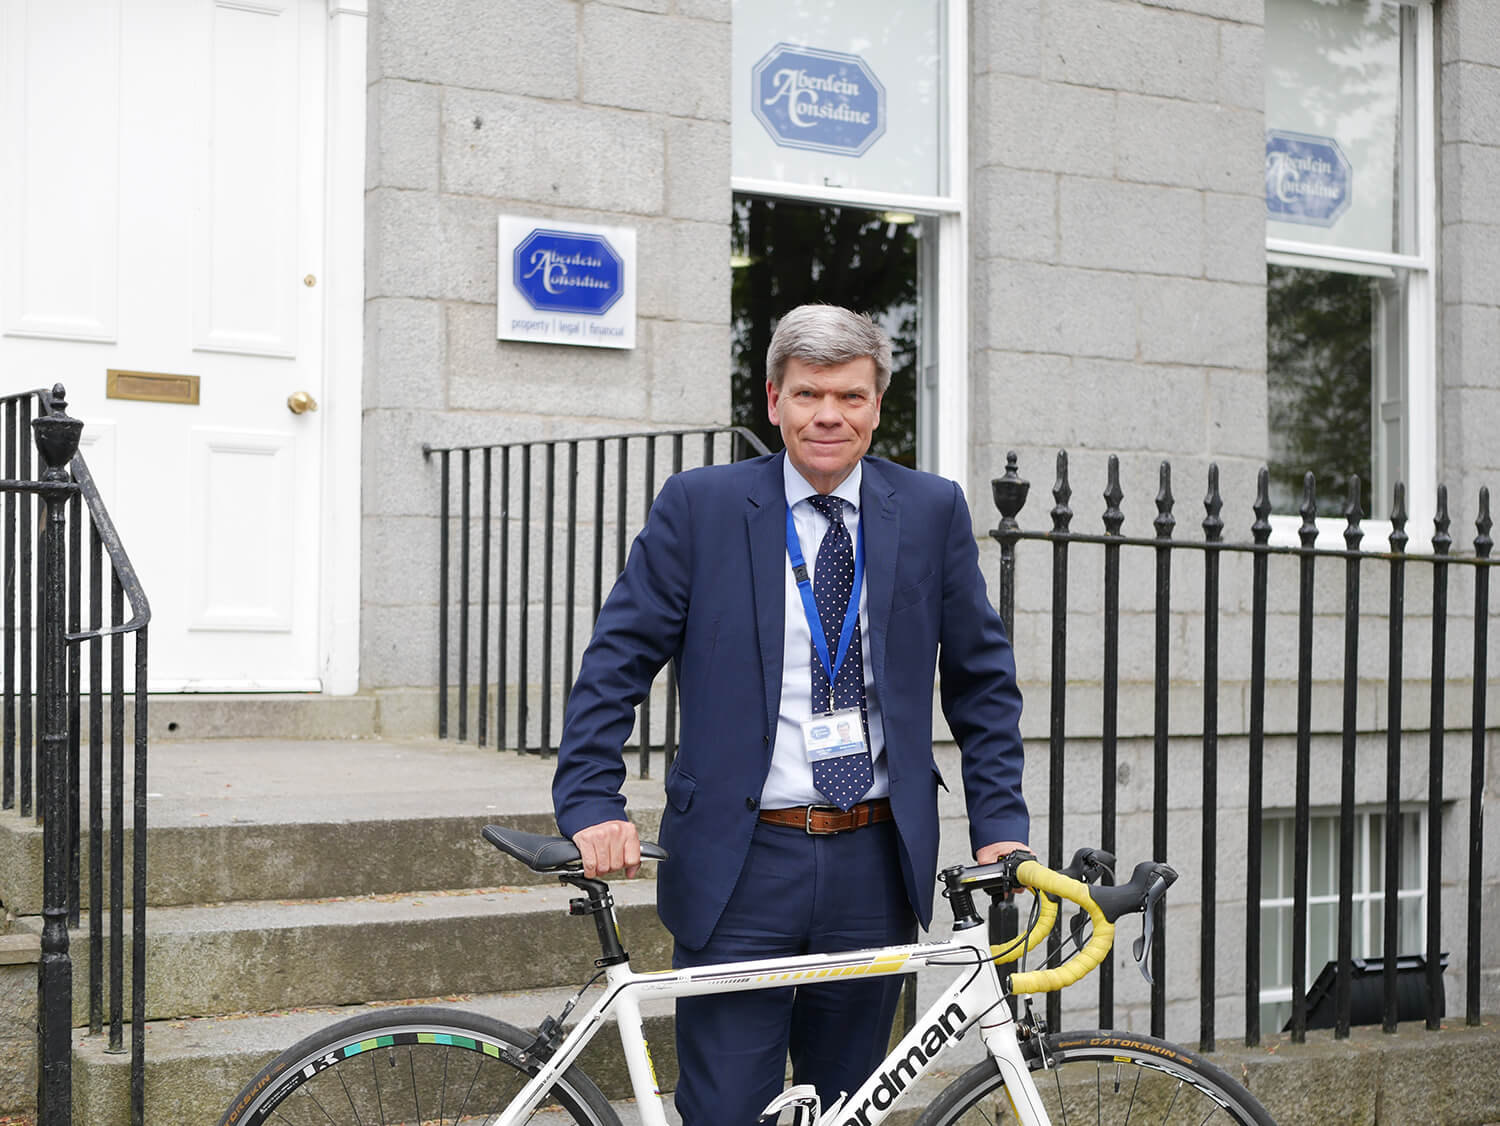 Aberdein Considine Partner embarks on four hundred mile charity bike ride